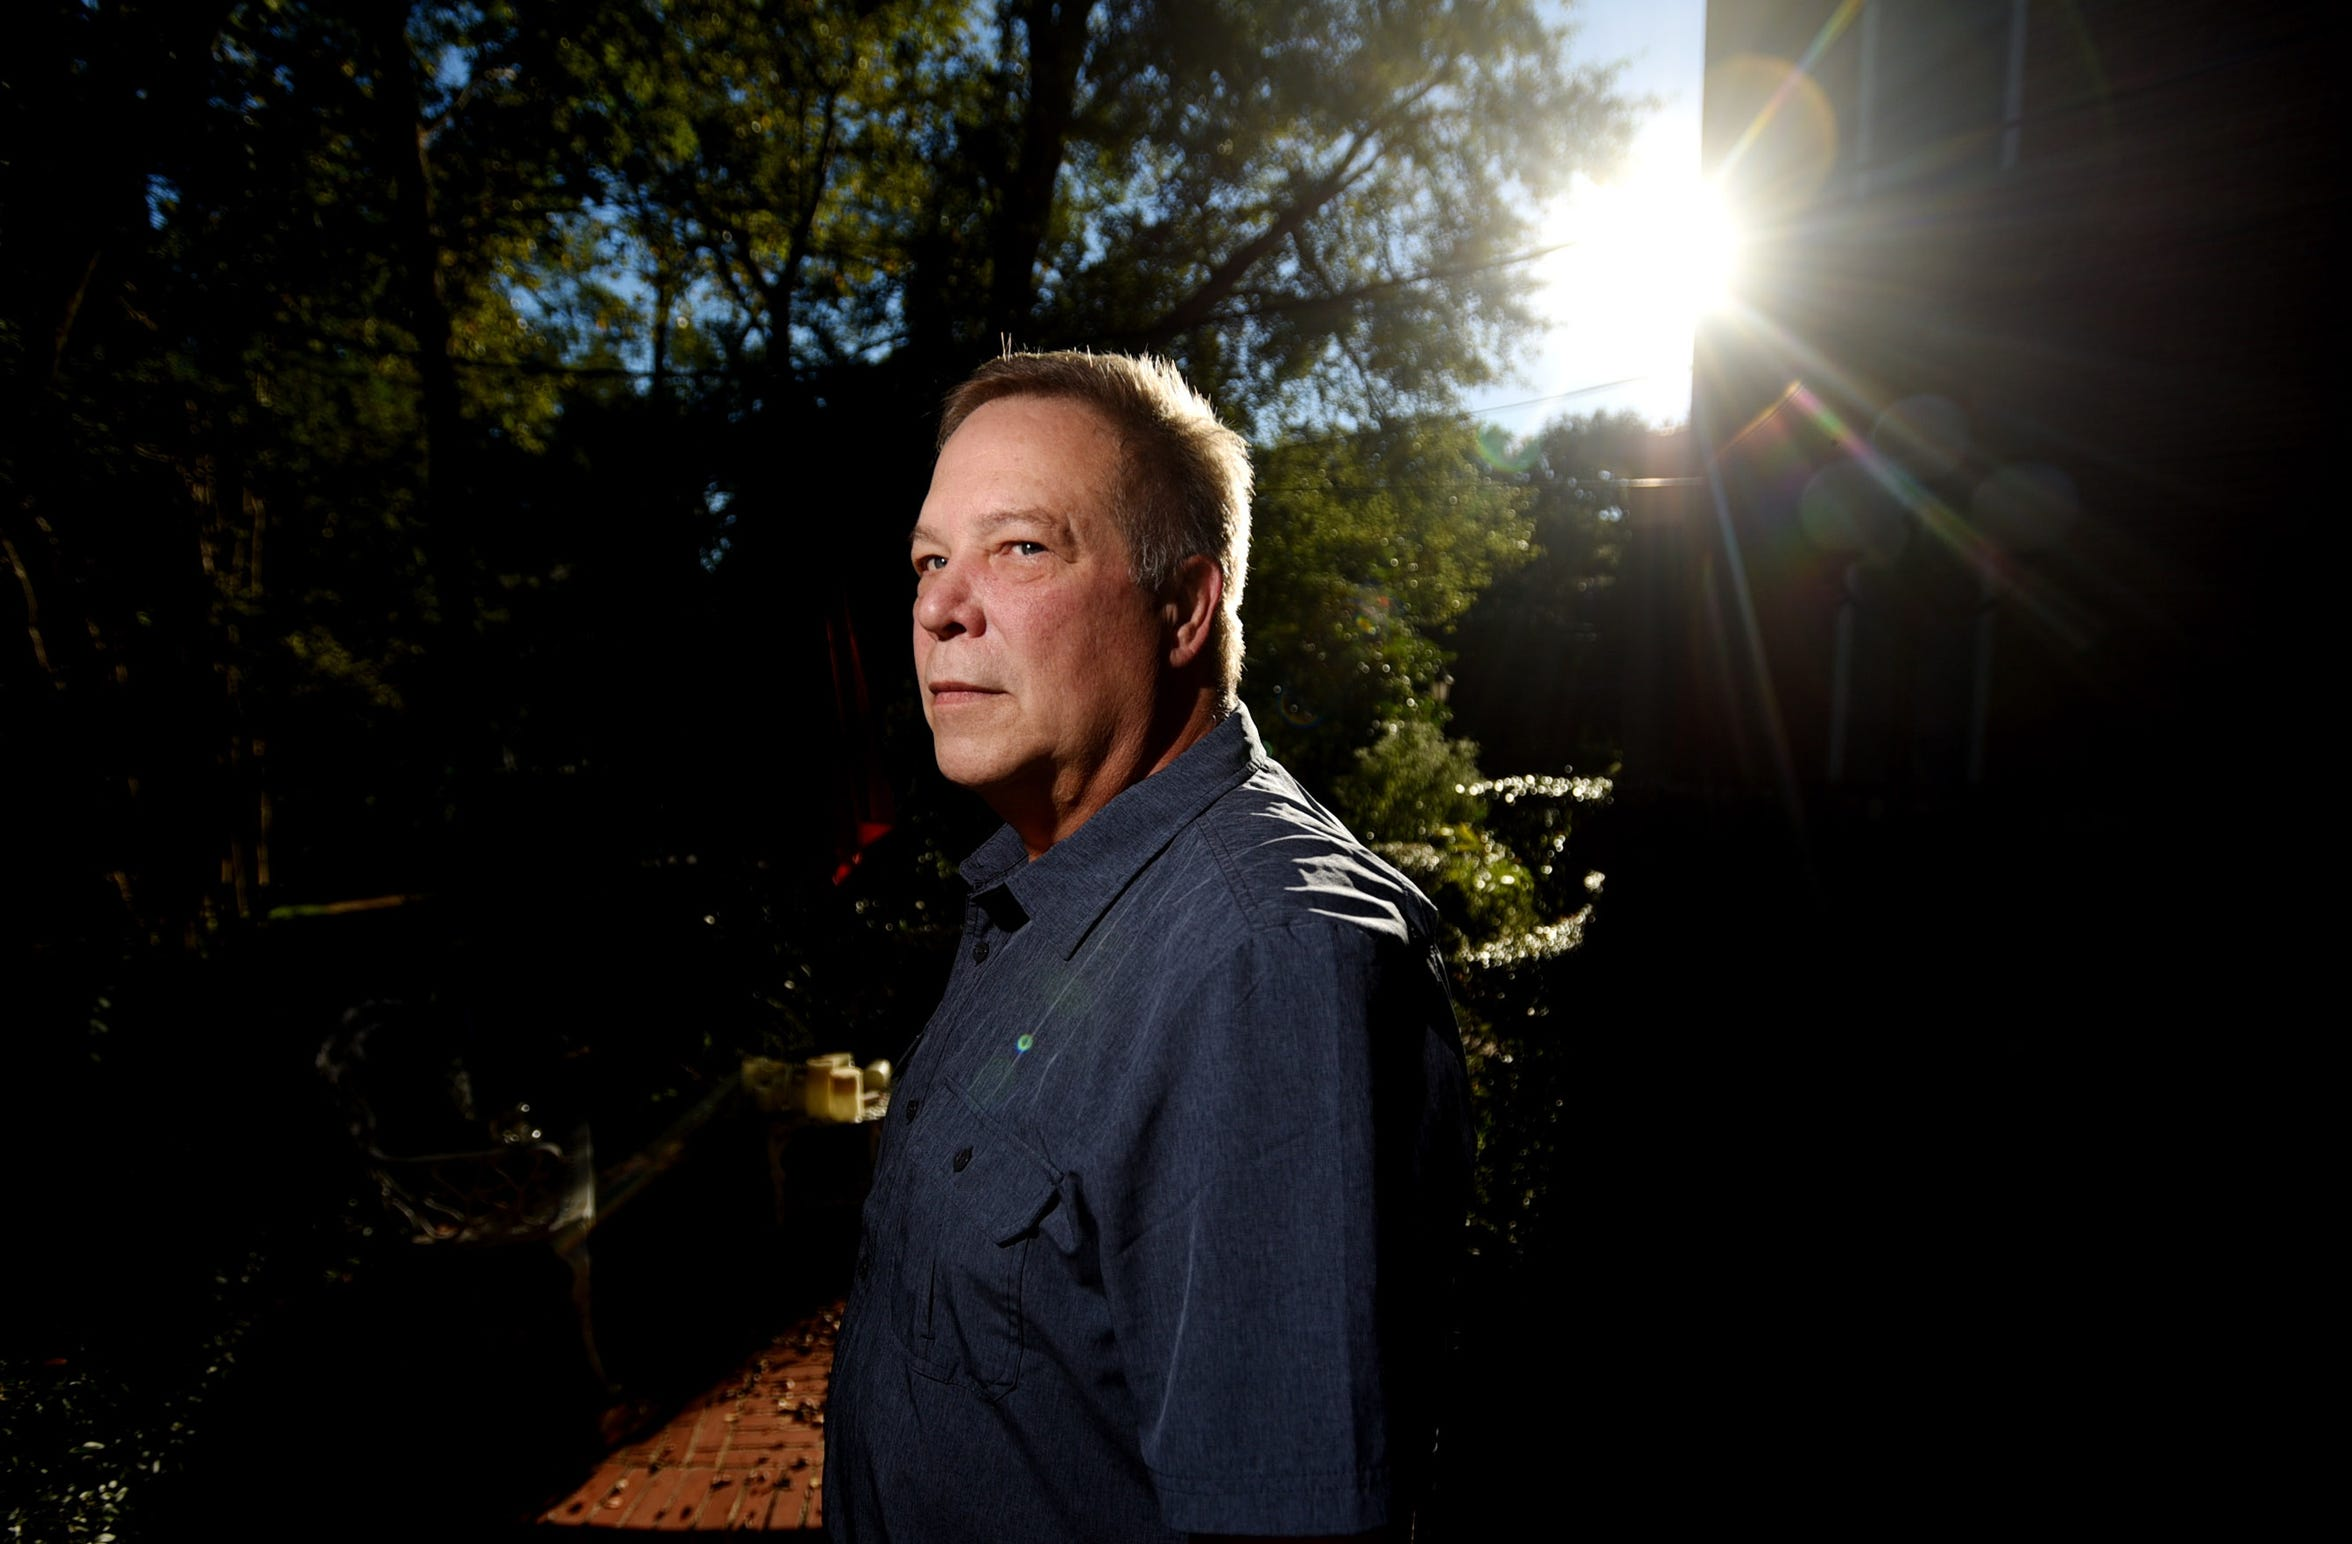 """Jimmy Harris, a neighbor of Richard Williams. Williams died after receiving severe burns when checking a gas leak in his back yard with a lit cigar in 2016. """"I wasn't that concerned because I felt like if it was a big major safety issue that the gas company would have taken care of it,"""" said Harris."""